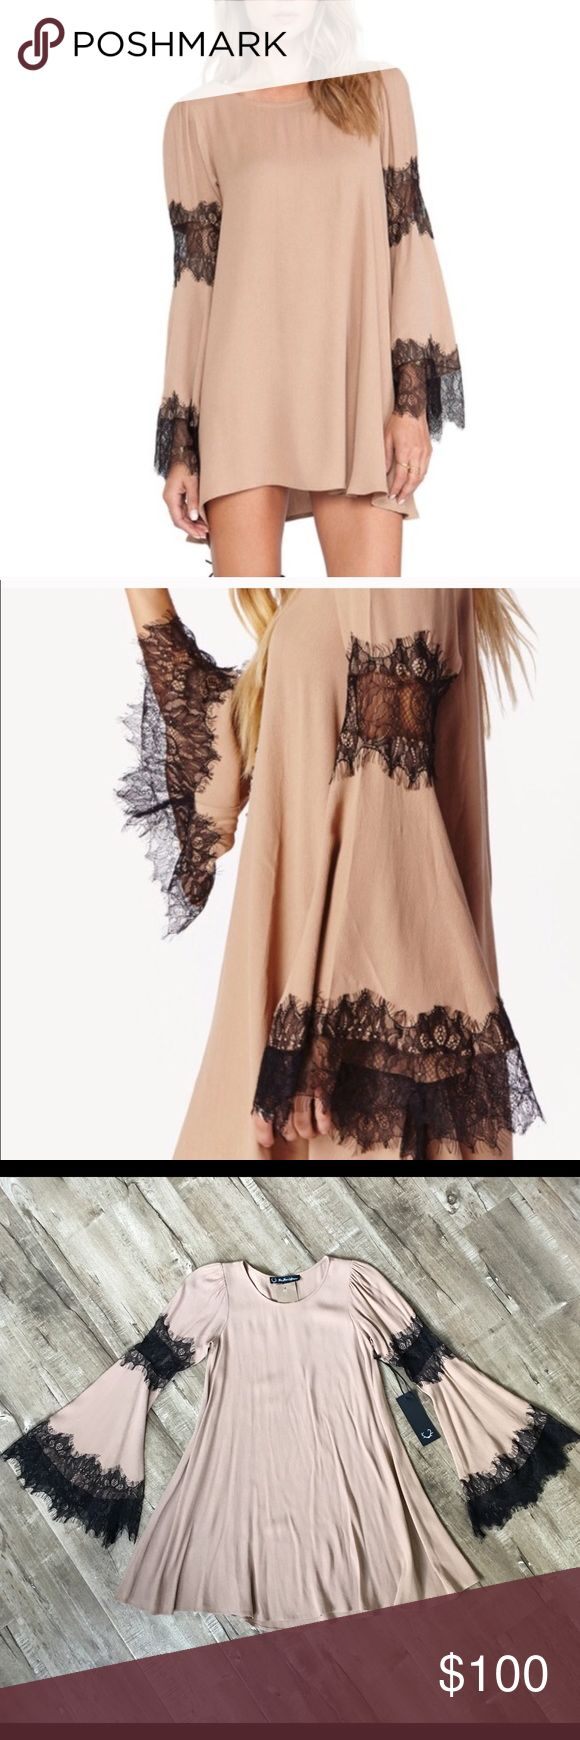 For Love and Lemons Festival Lace Sleeve Dress NWT Beautiful, never been worn NWT, nude and black festival style bell sleeve tent mini dress. Wide neck, long sleeve with mid arm lace inset and scalloped lace at the cuffs. Unlined. Smoke free seller.  No trades please. XS. For Love and Lemons Dresses Mini